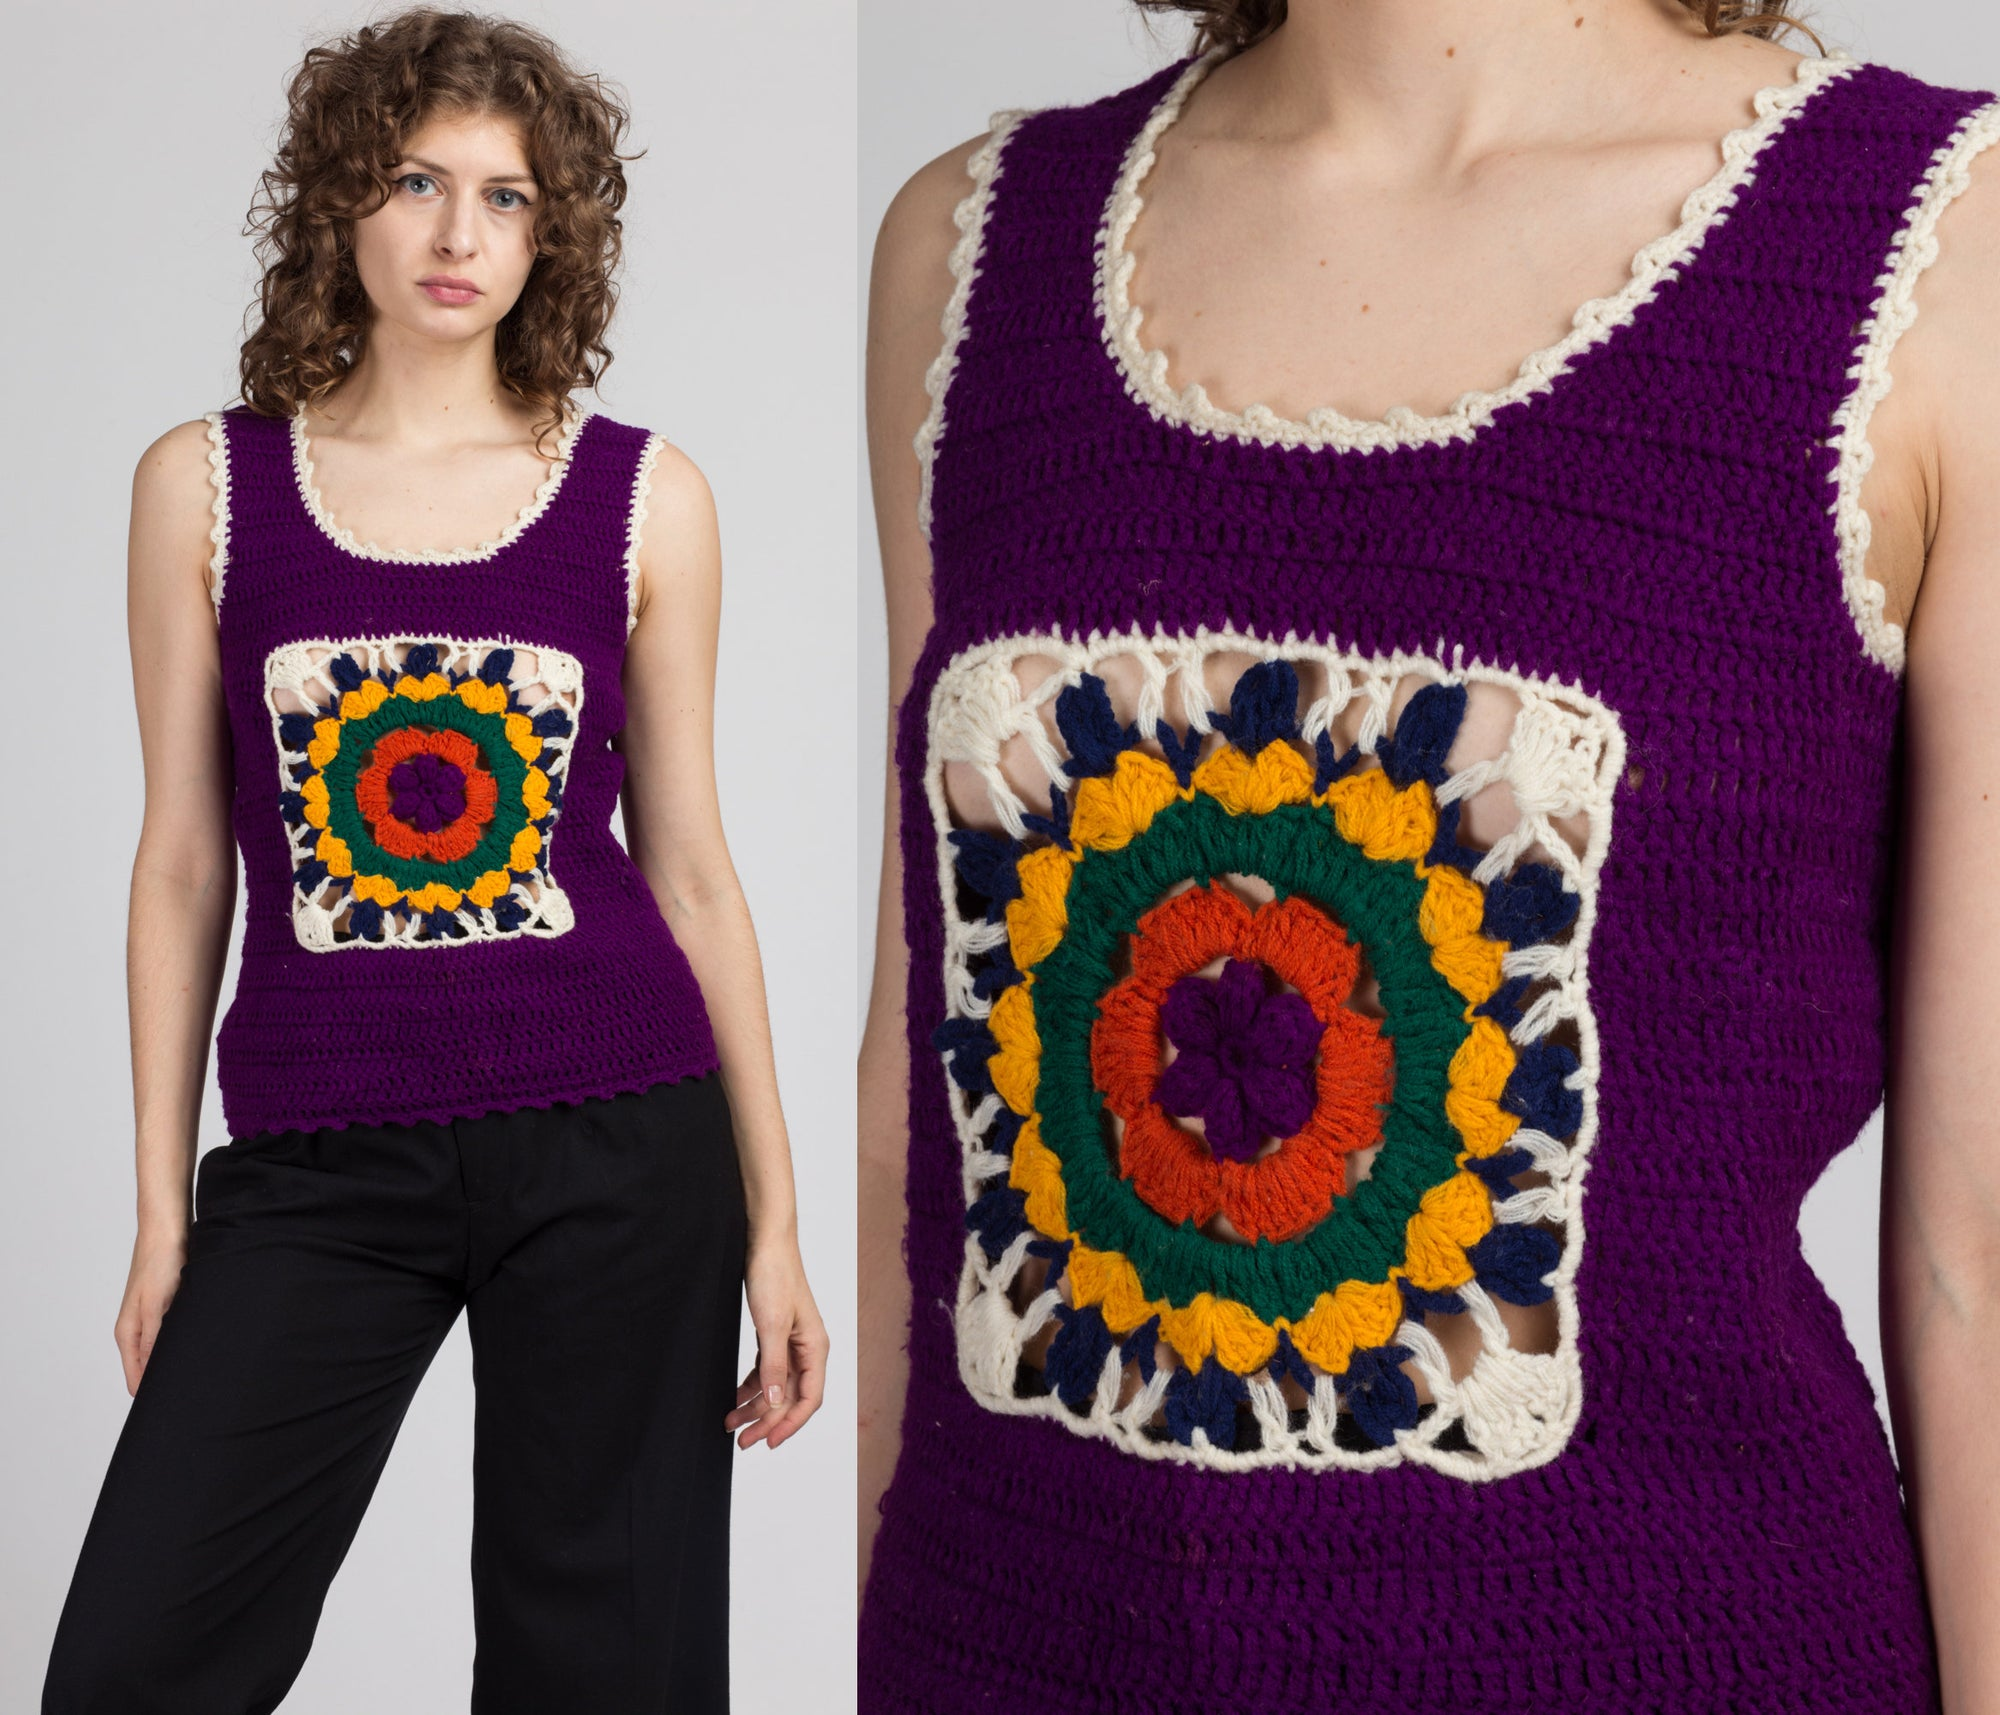 Vintage Crochet Knit Crop Top - Small